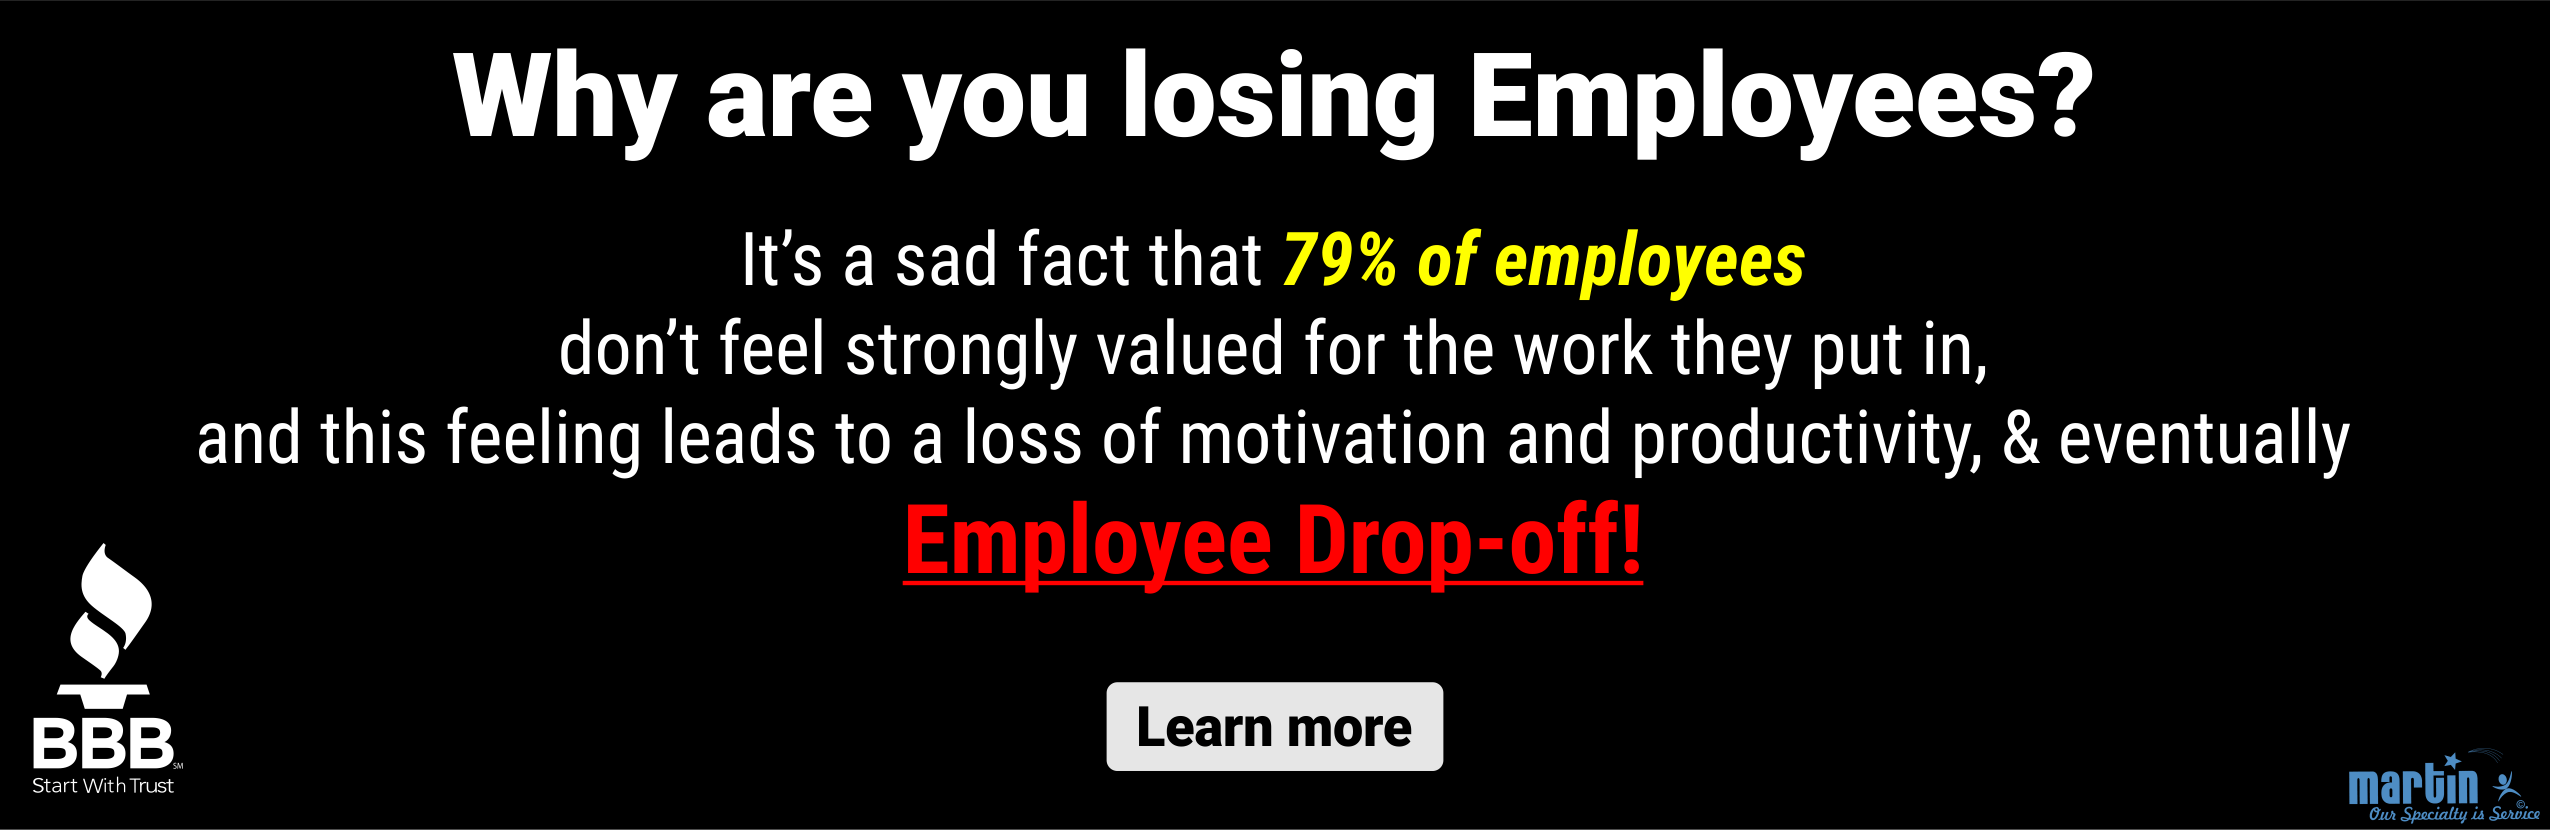 Losing employees